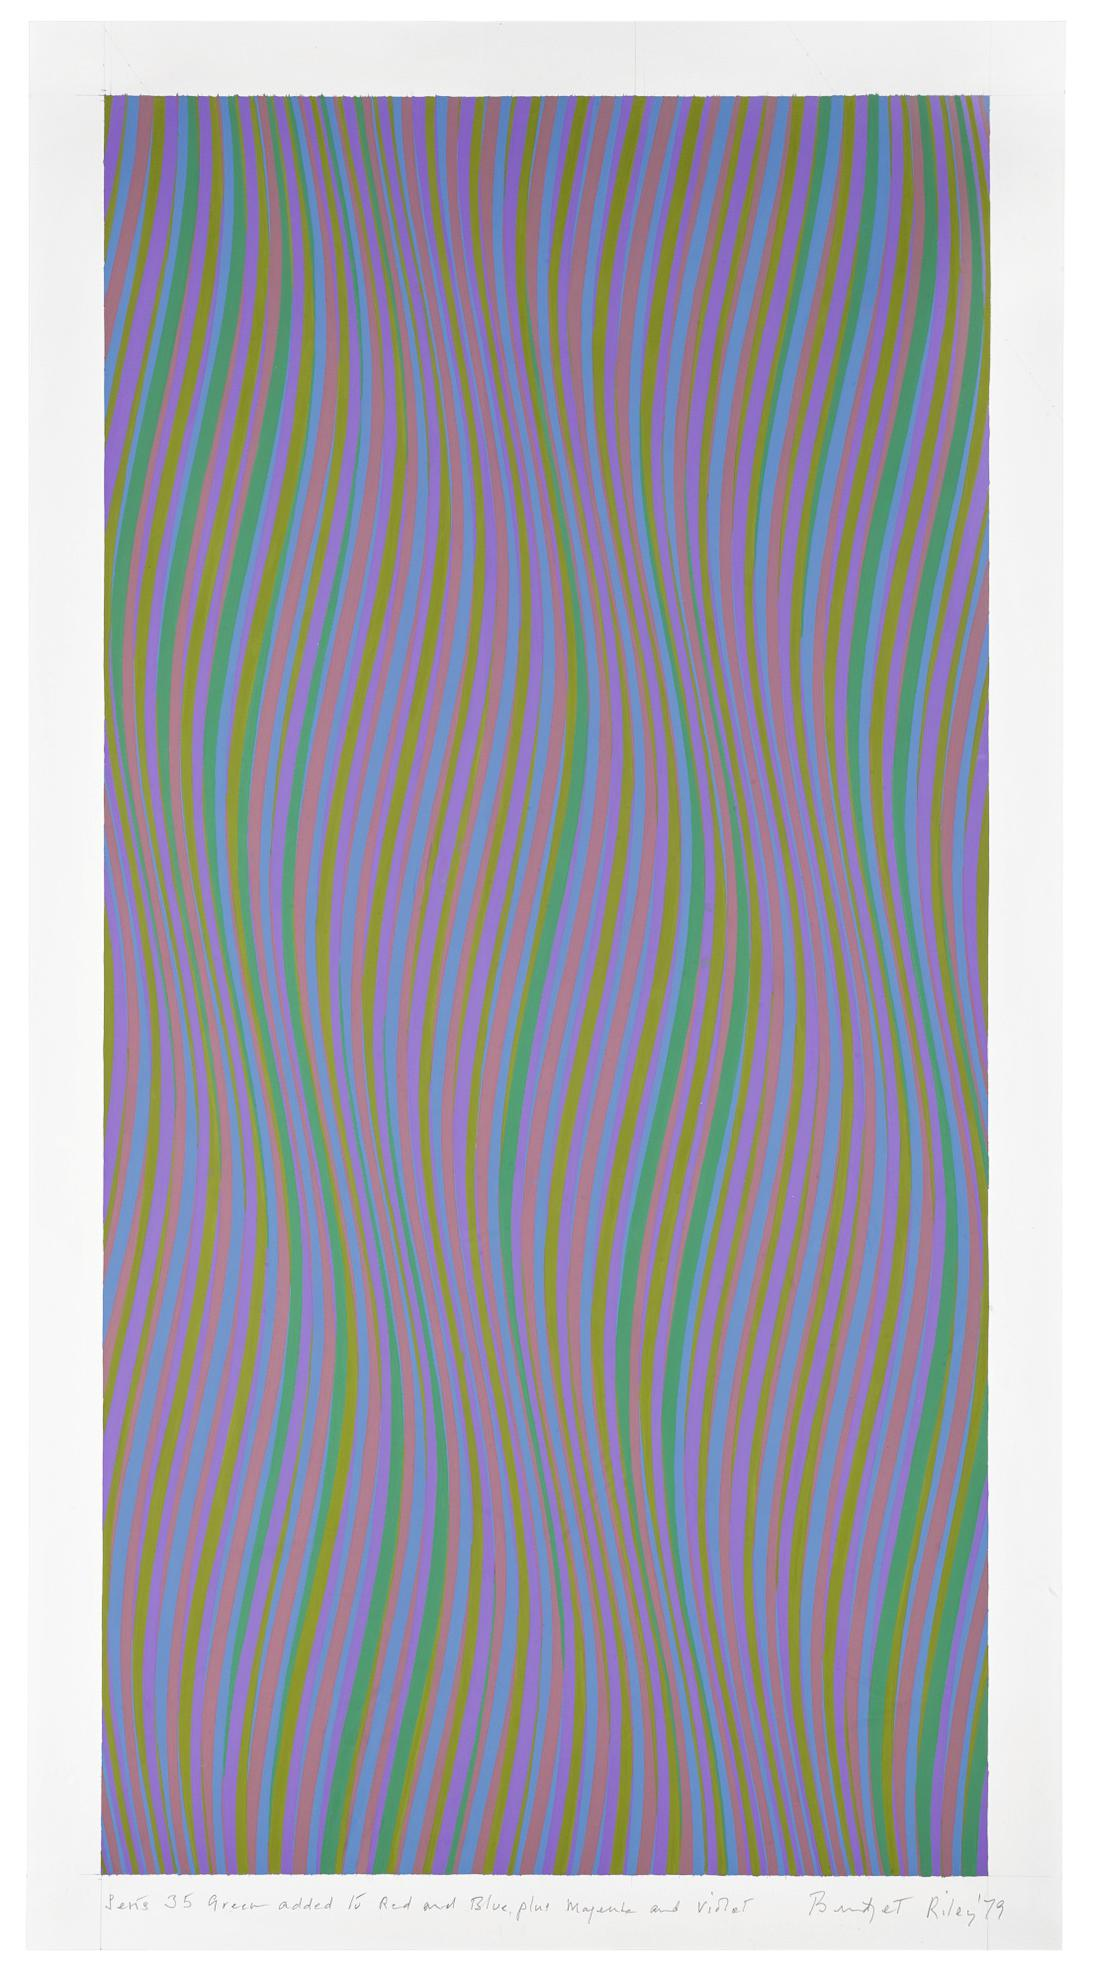 Bridget Riley-Series 35 (Green Added To Red And Blue, Plus Magenta And Violet)-1979